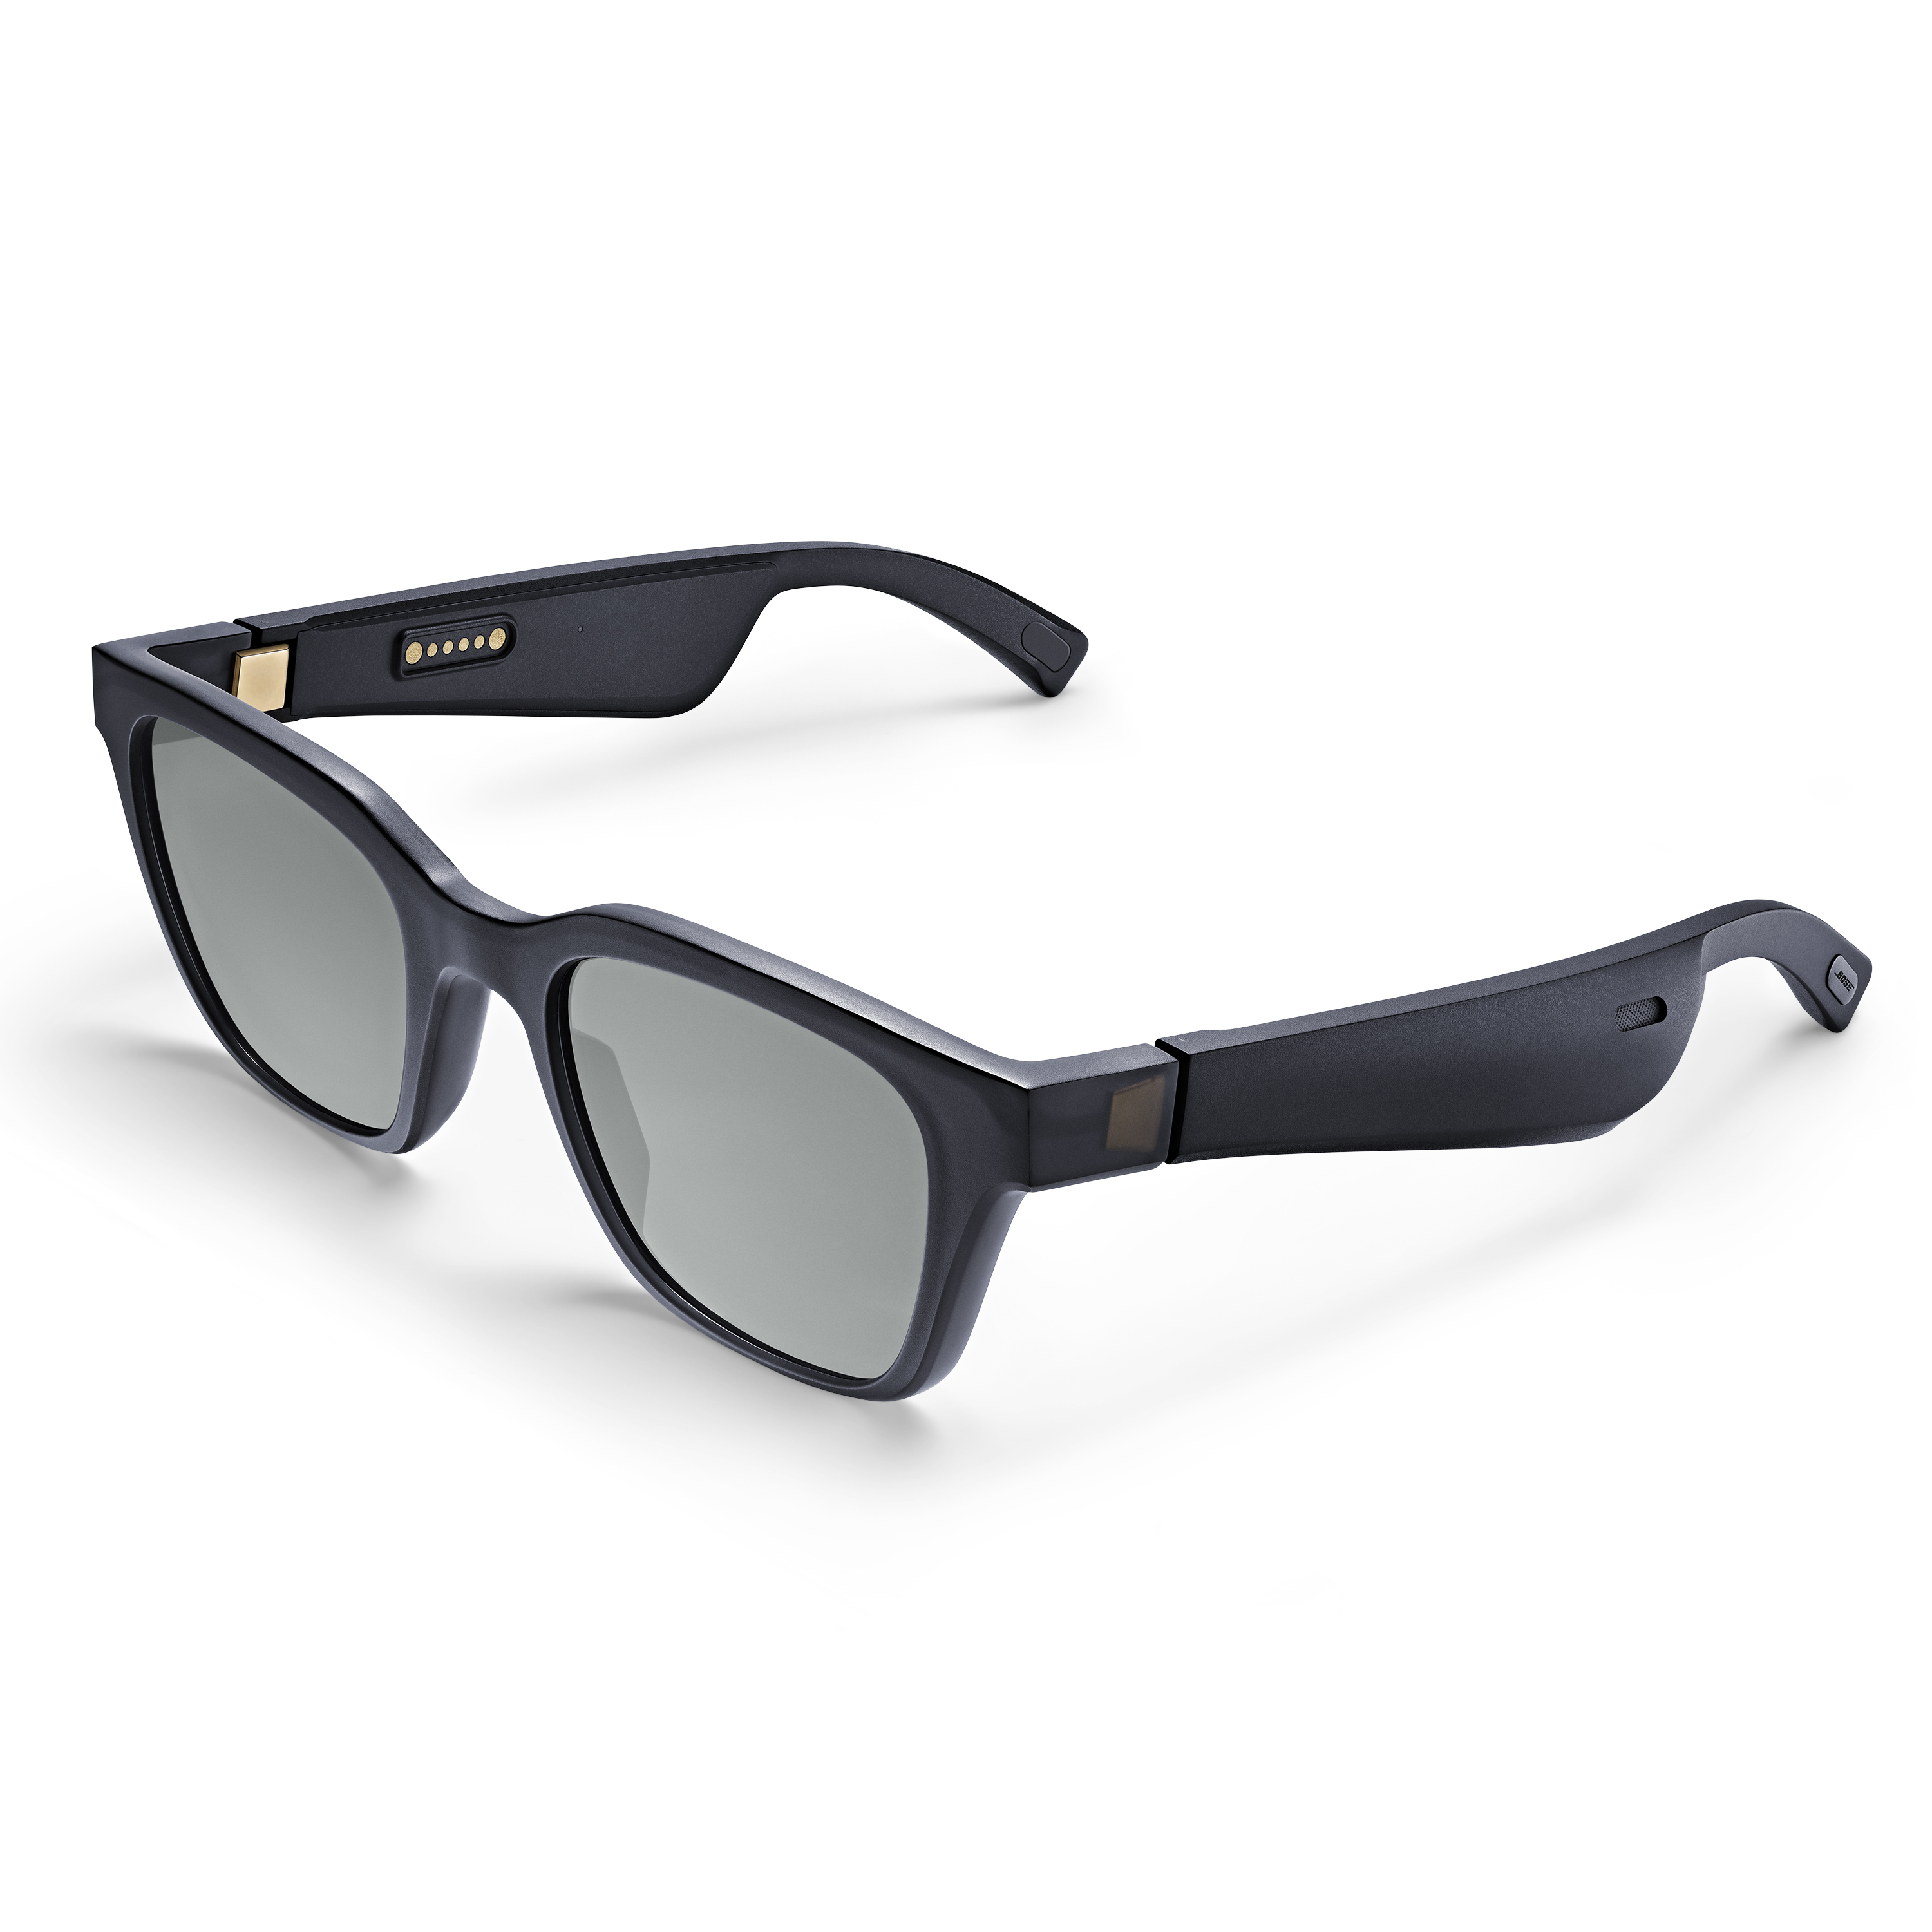 35c10b3b41 Bose is dabbling in  audio AR  with a pair of sunglasses